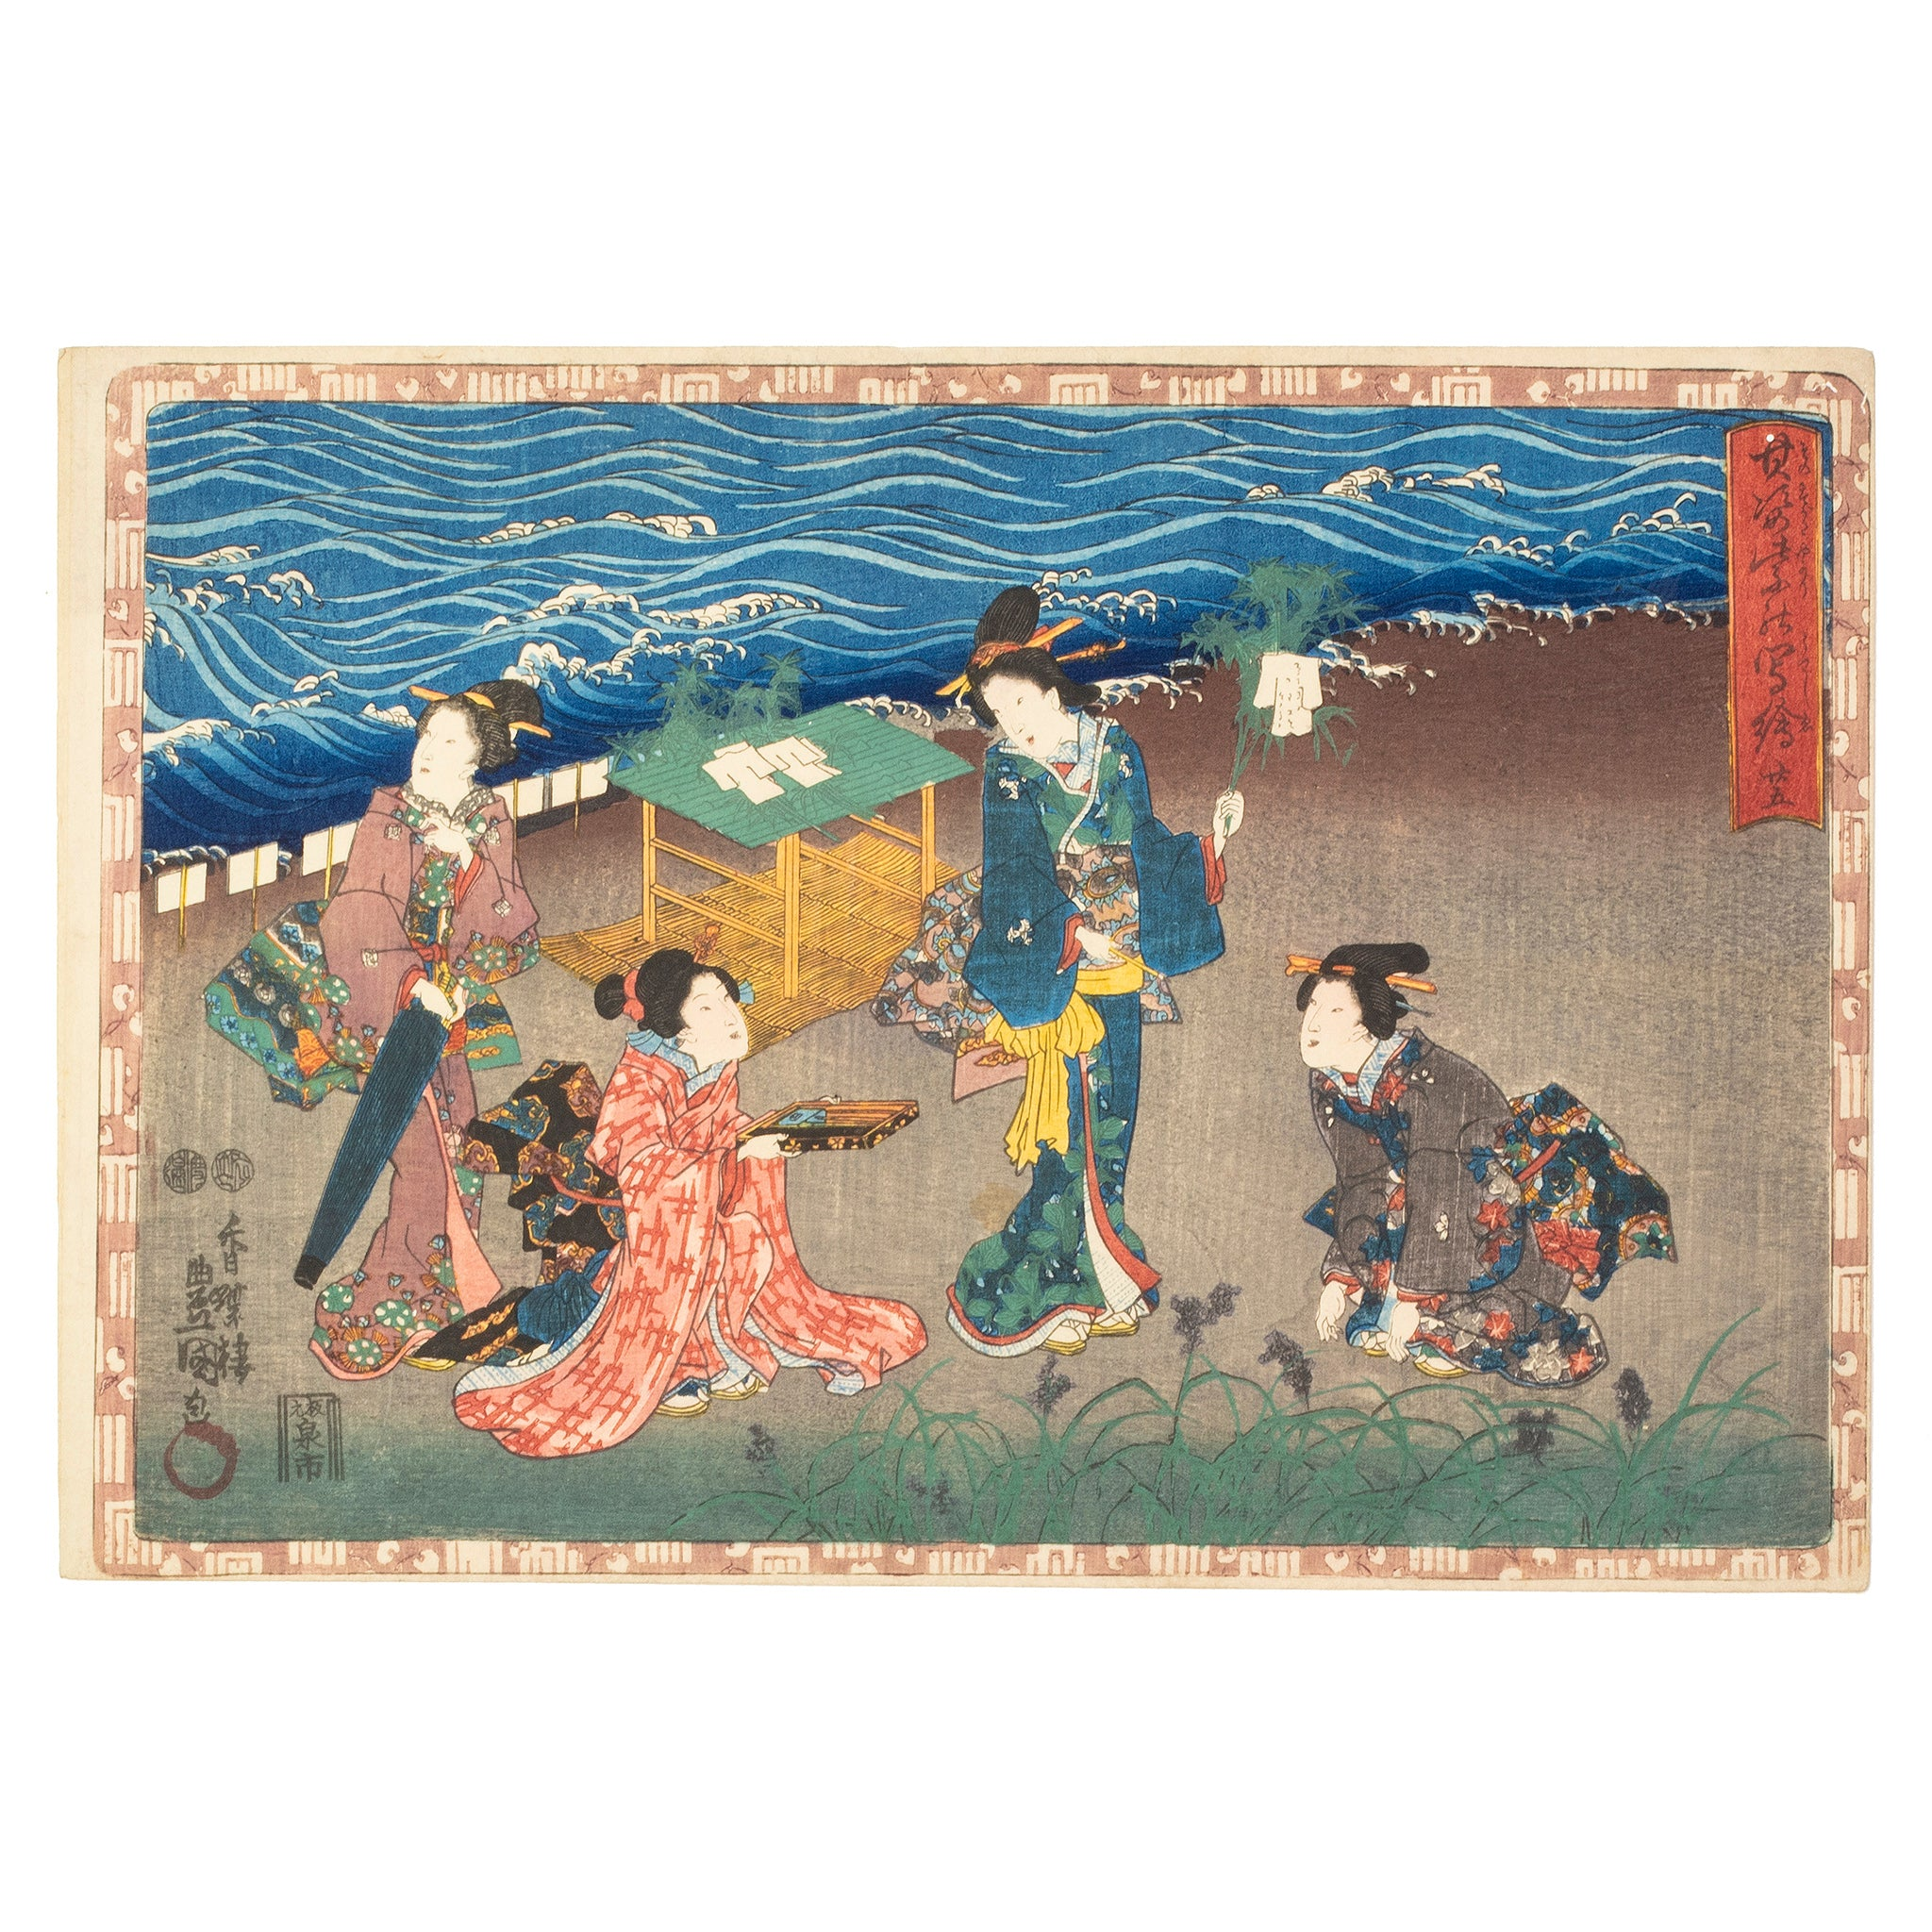 Images of the Magic Lantern | Utagawa Kunisada (Toyokuni III)